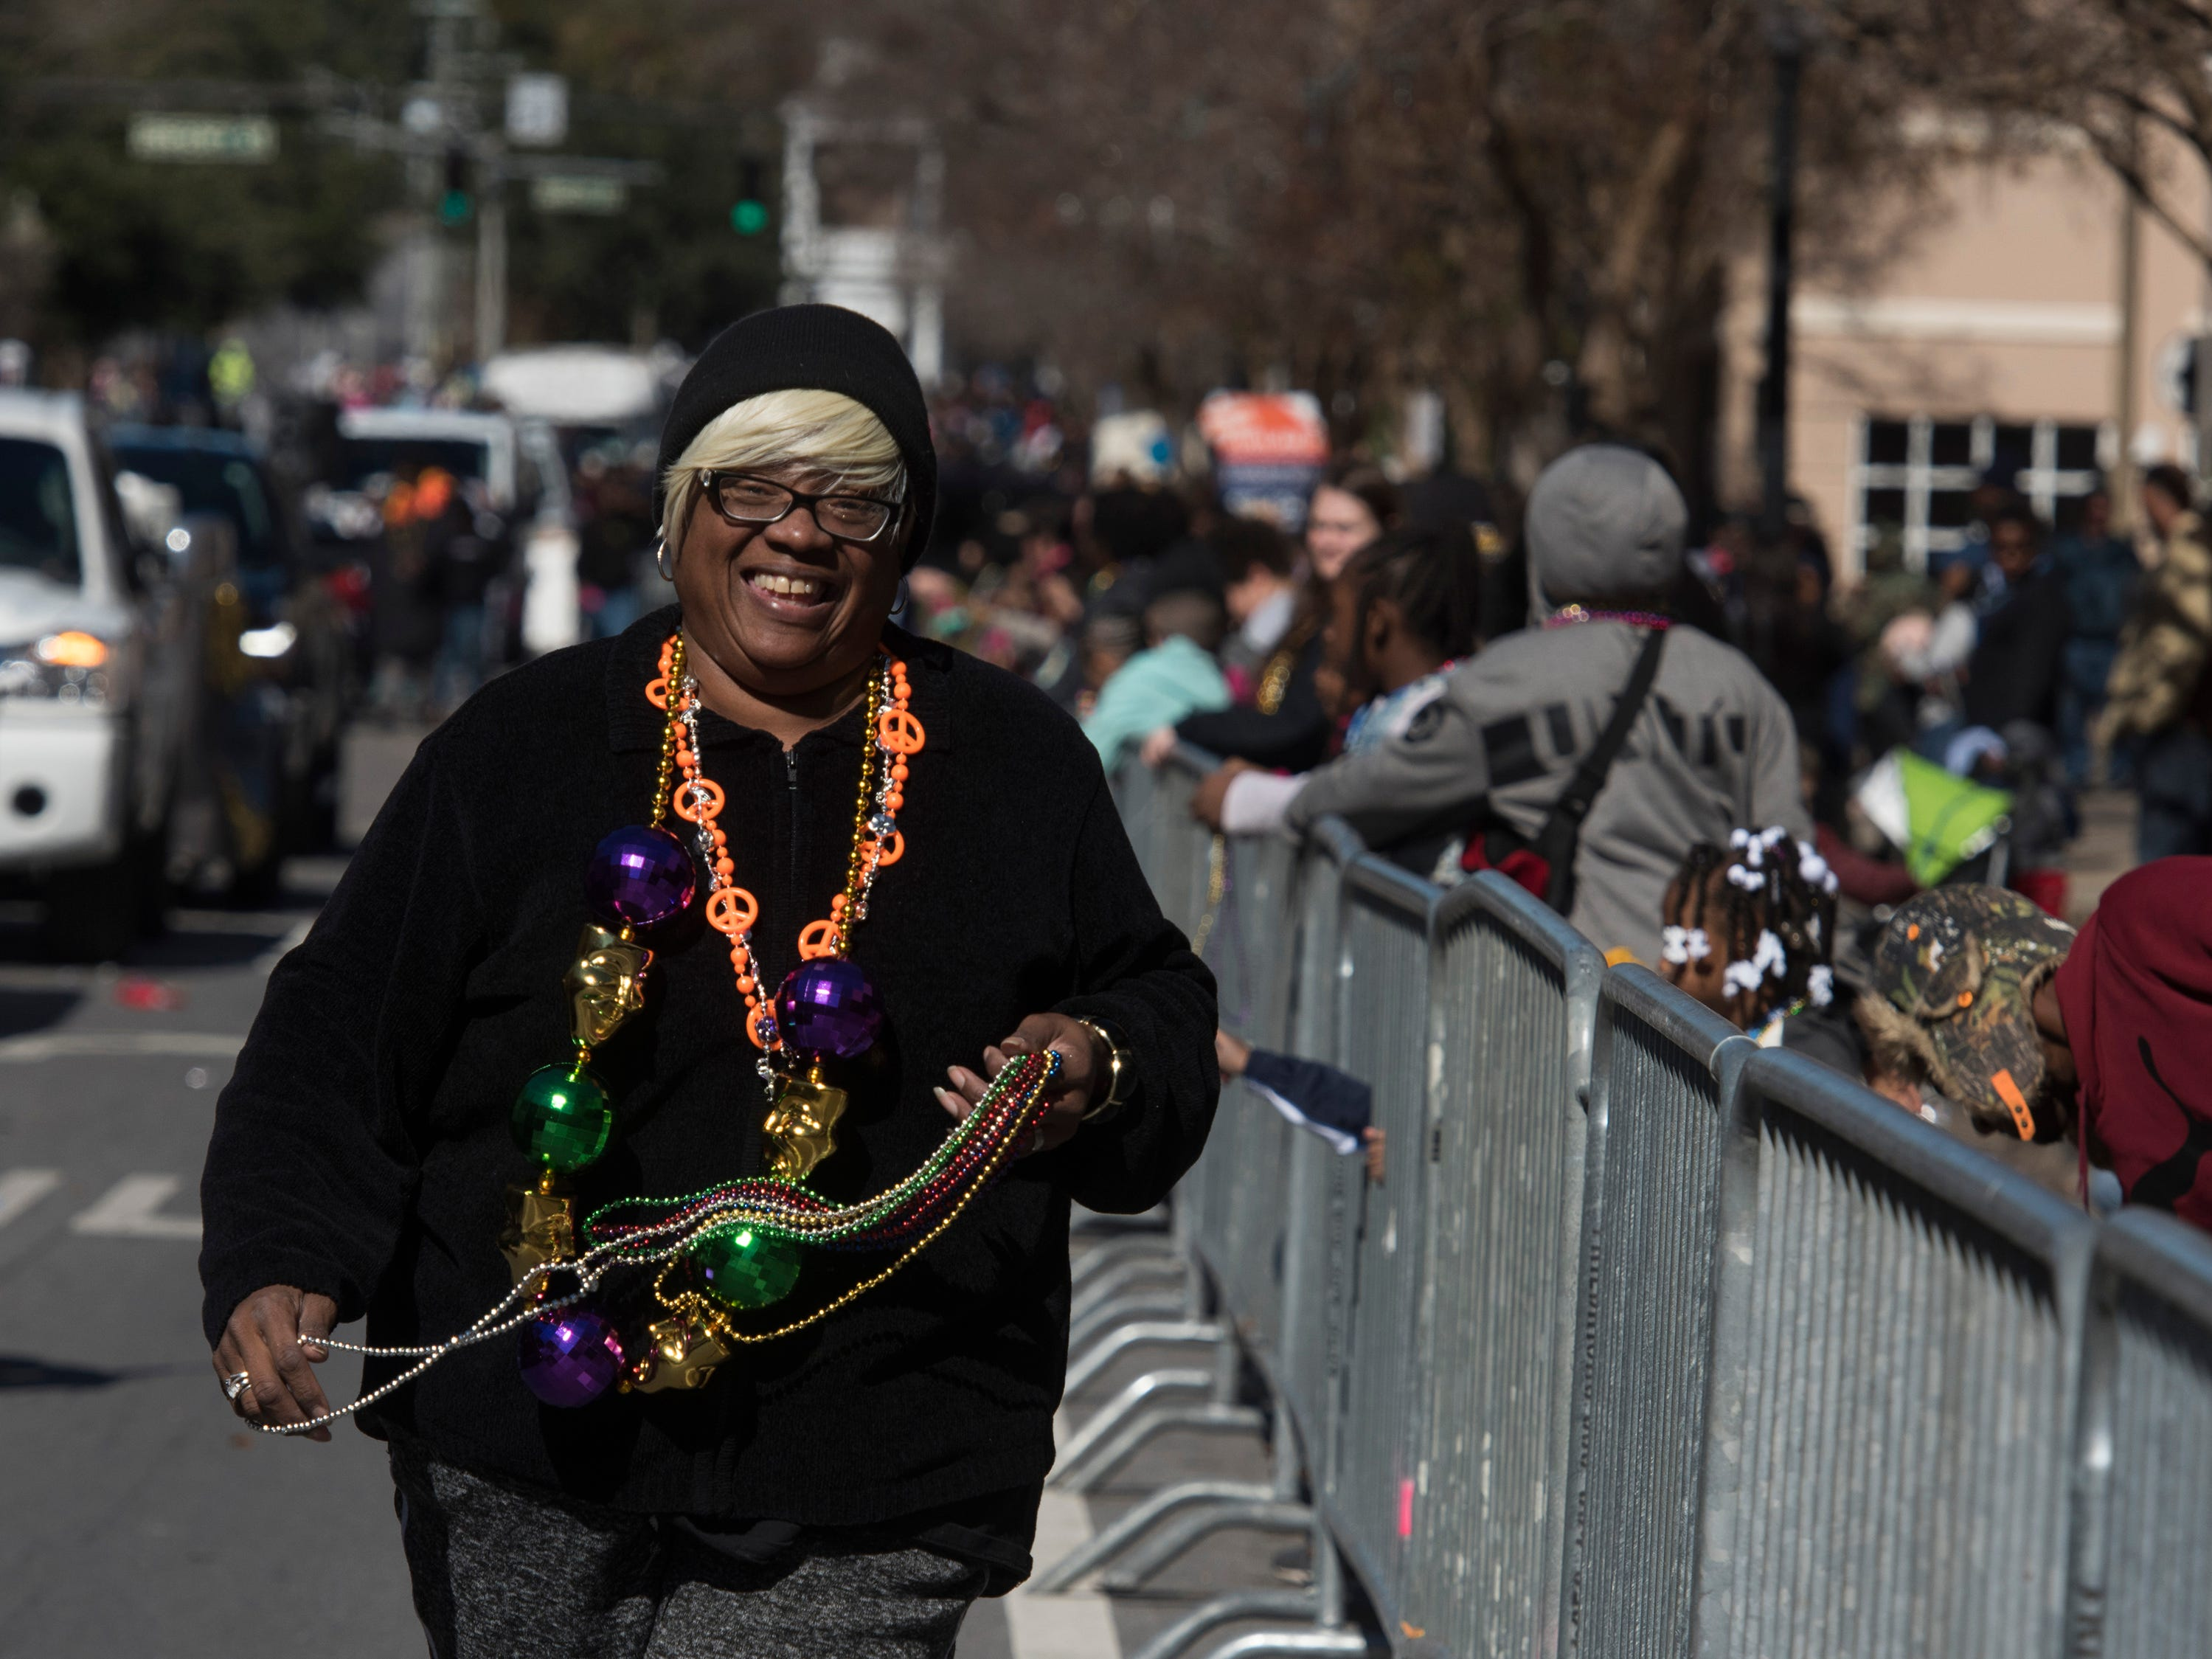 Wanda Baker passes out beads and trinkets with taking part in the annual Martin Luther King, Jr. parade in downtown Pensacola on Monday, Jan. 21, 2019.